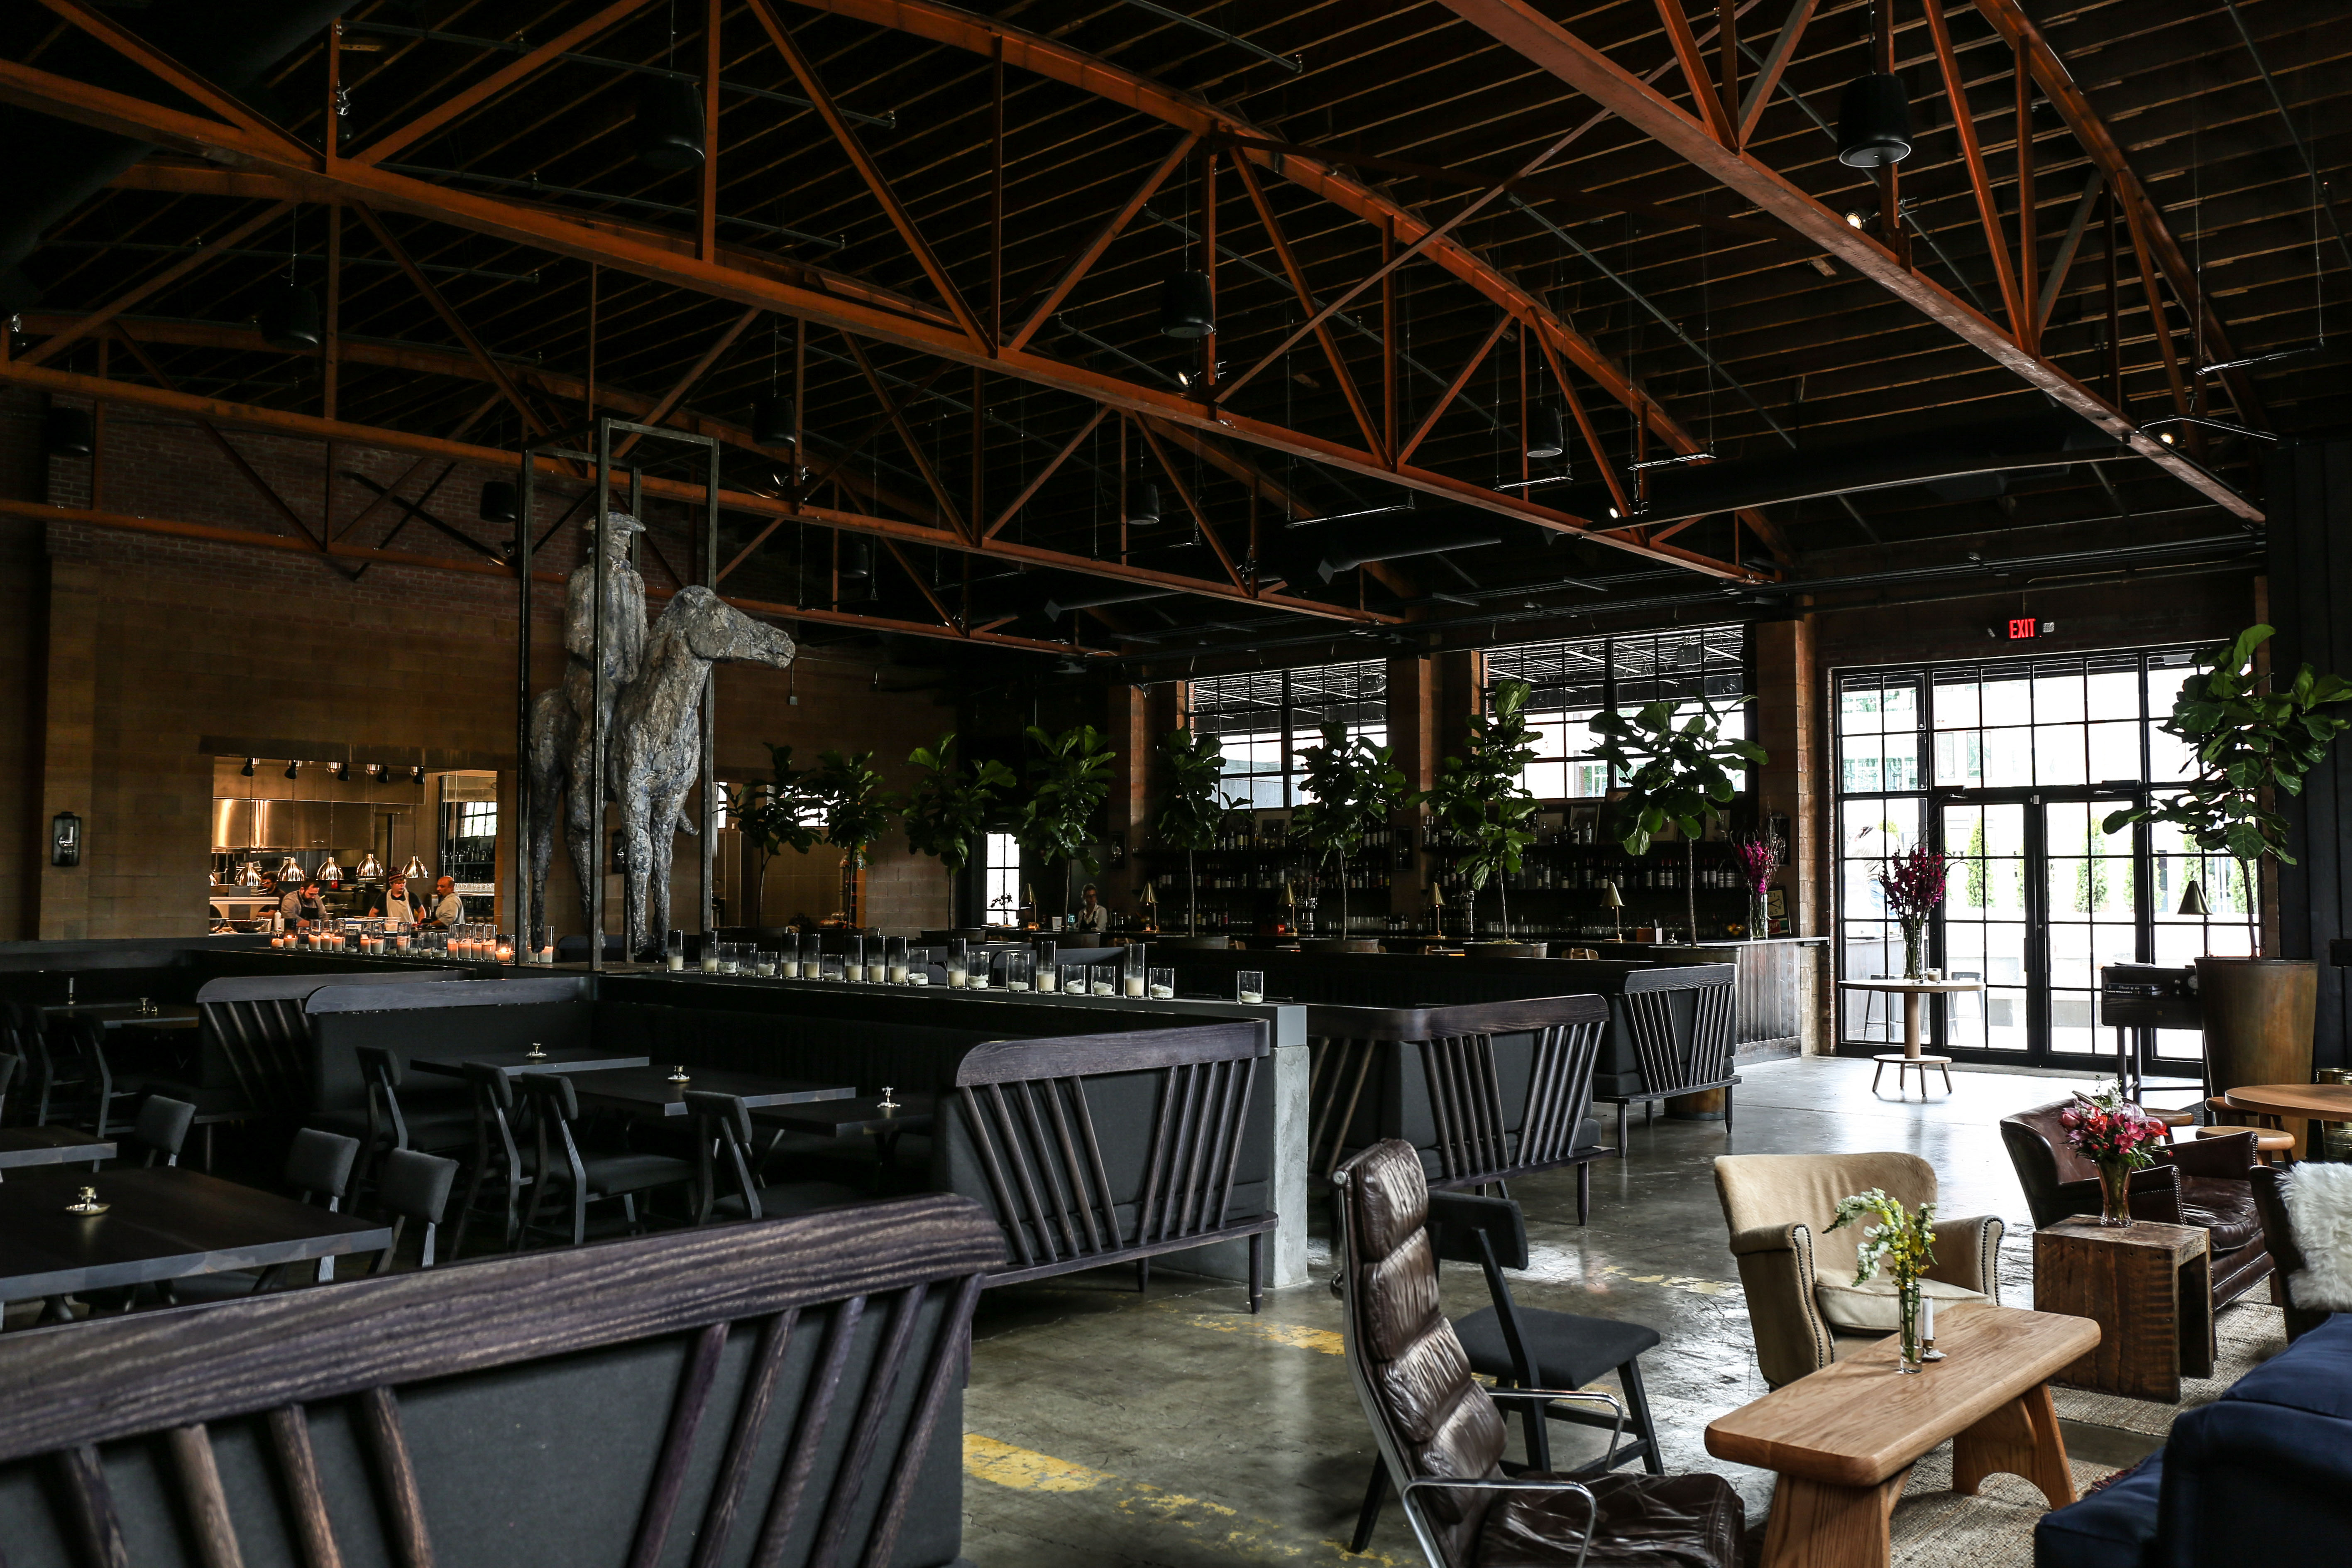 Nashville-5th-and-Taylor-American-Restaurant-Polycor-Alberene-Soapstone-Virginia